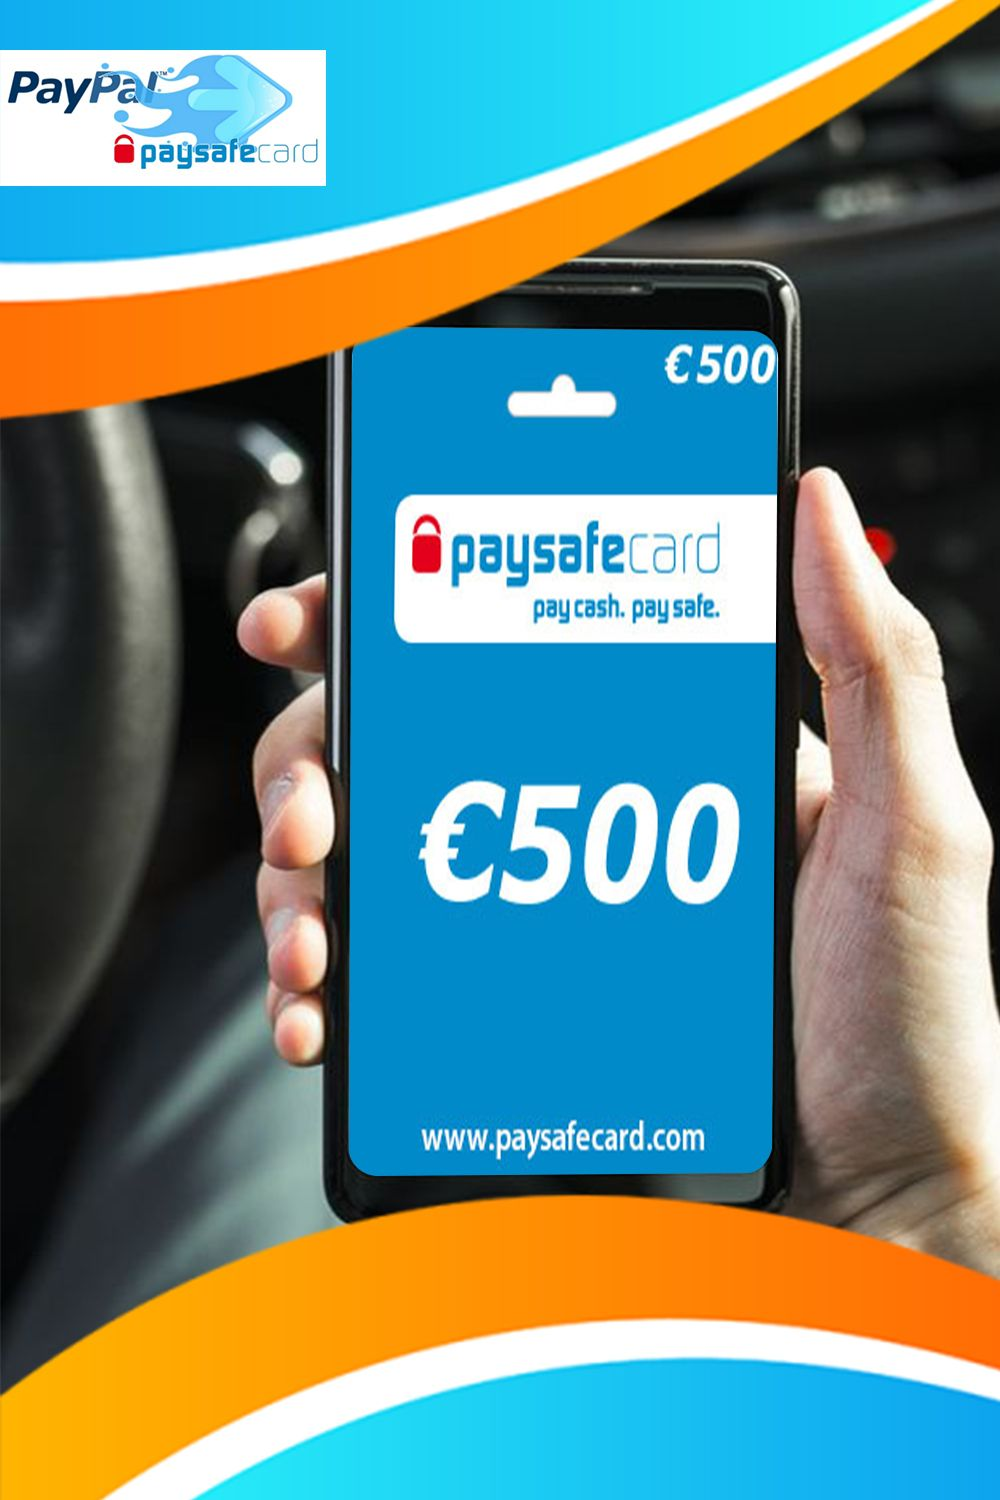 Free gift card of the paysafecard online offer in 2020